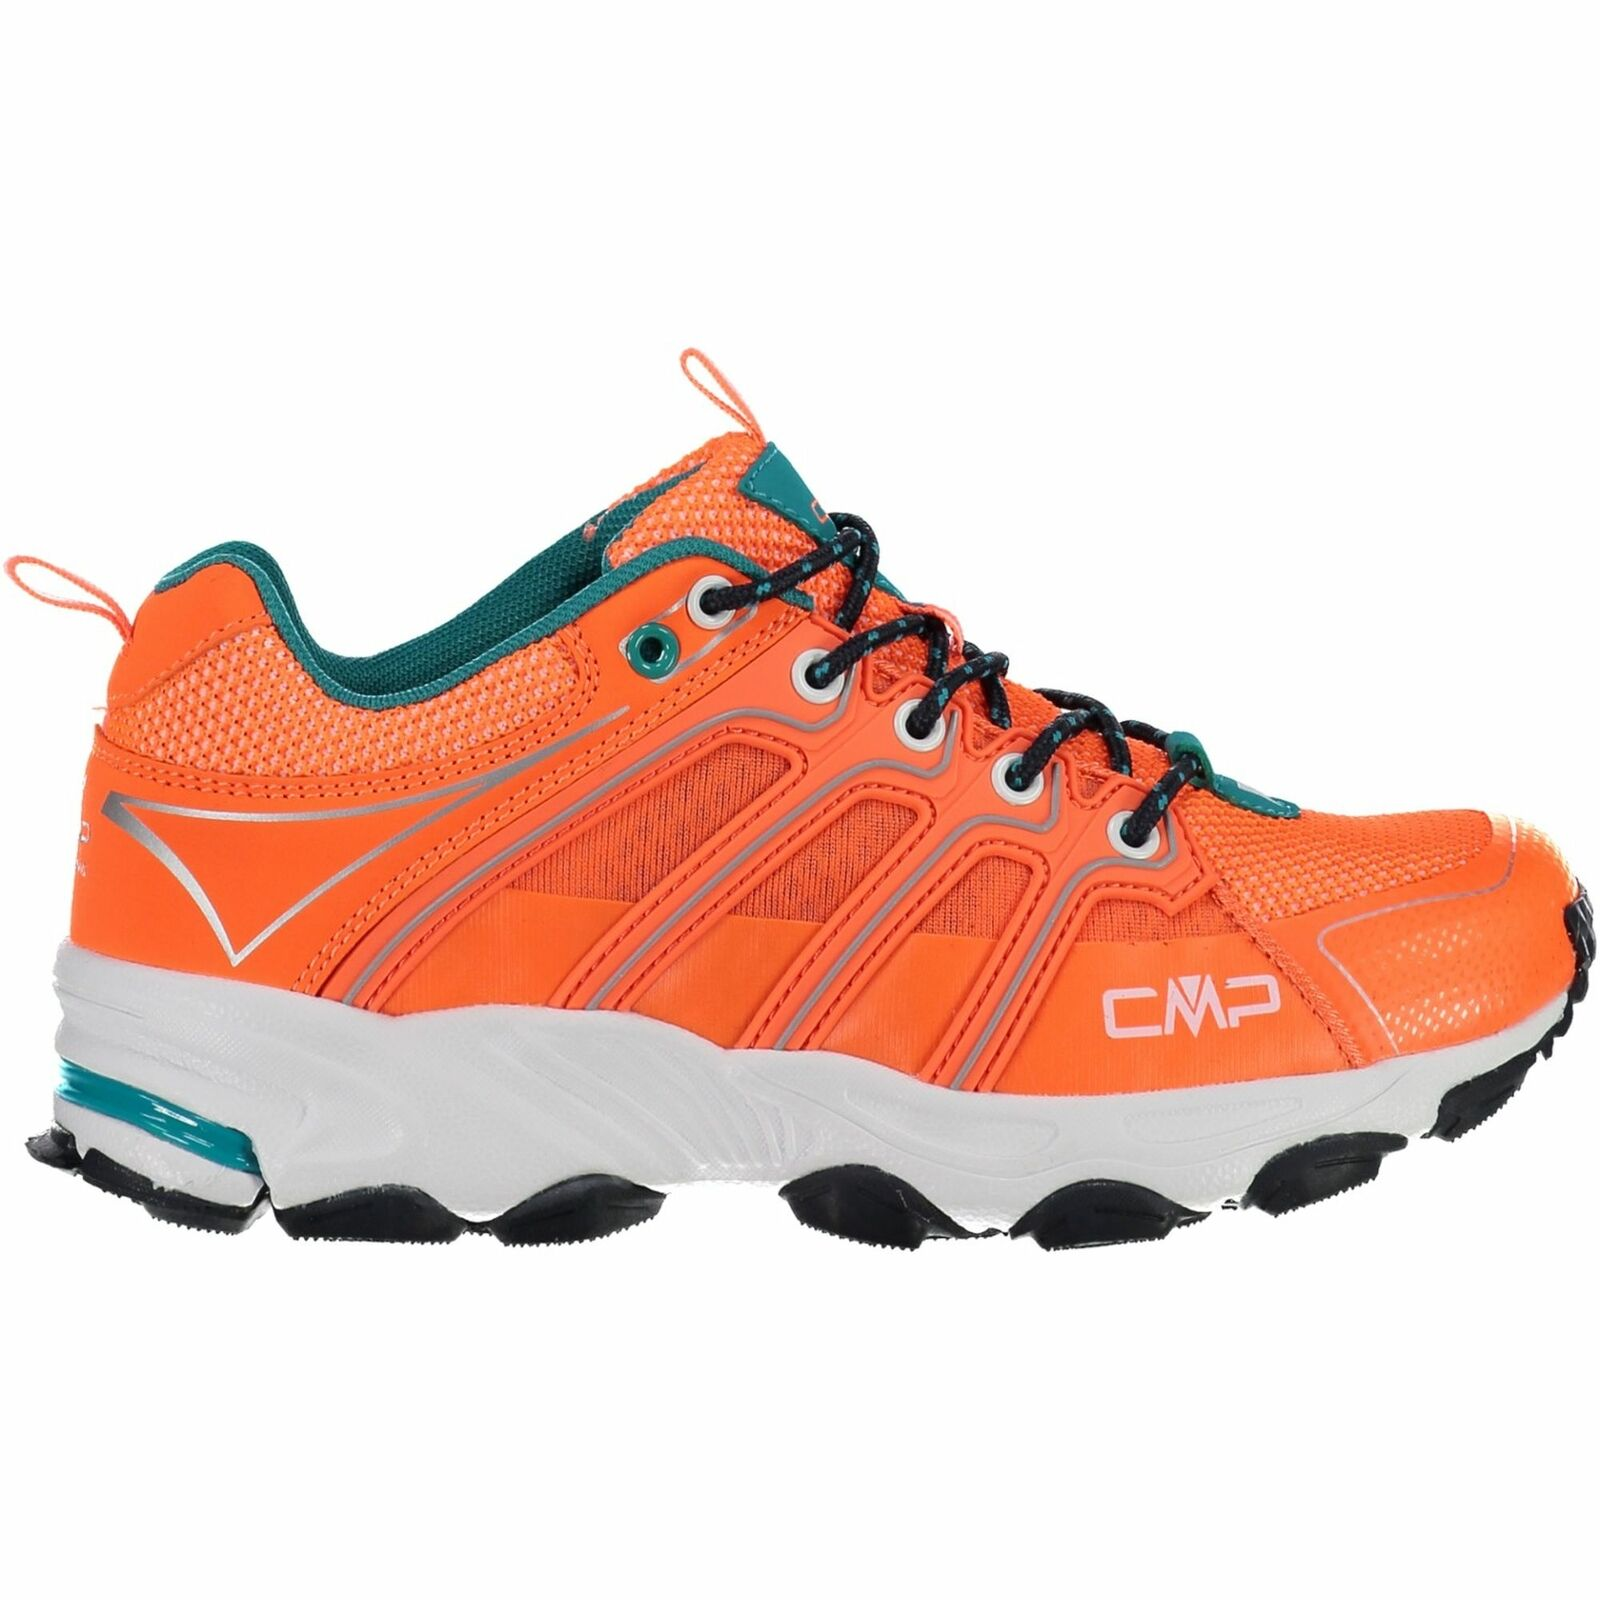 CMP Running shoes Sports shoes Agena Wmn Trail  shoes orange Lightweight Plain All Mesh  online discount